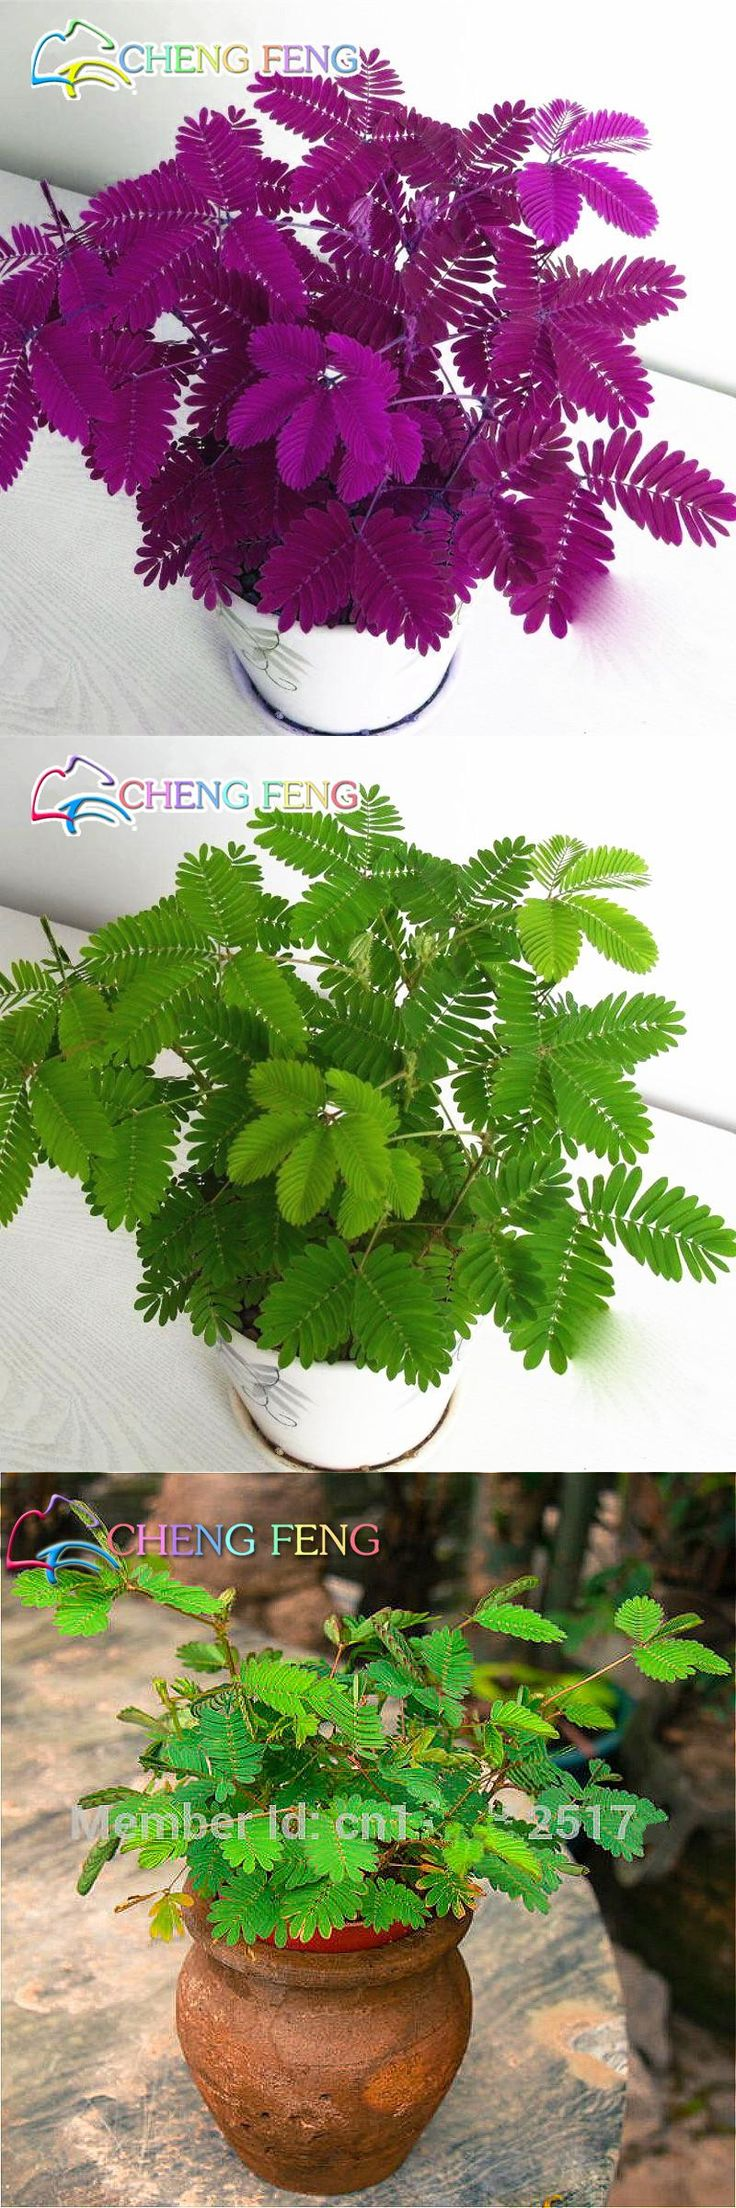 [Visit to Buy] big sale! 30Seeds / Pack, Sensitive plant mimosa, mimosa seeds, sensitive plants Bashful grass seeds bonsai free shipping #Advertisement